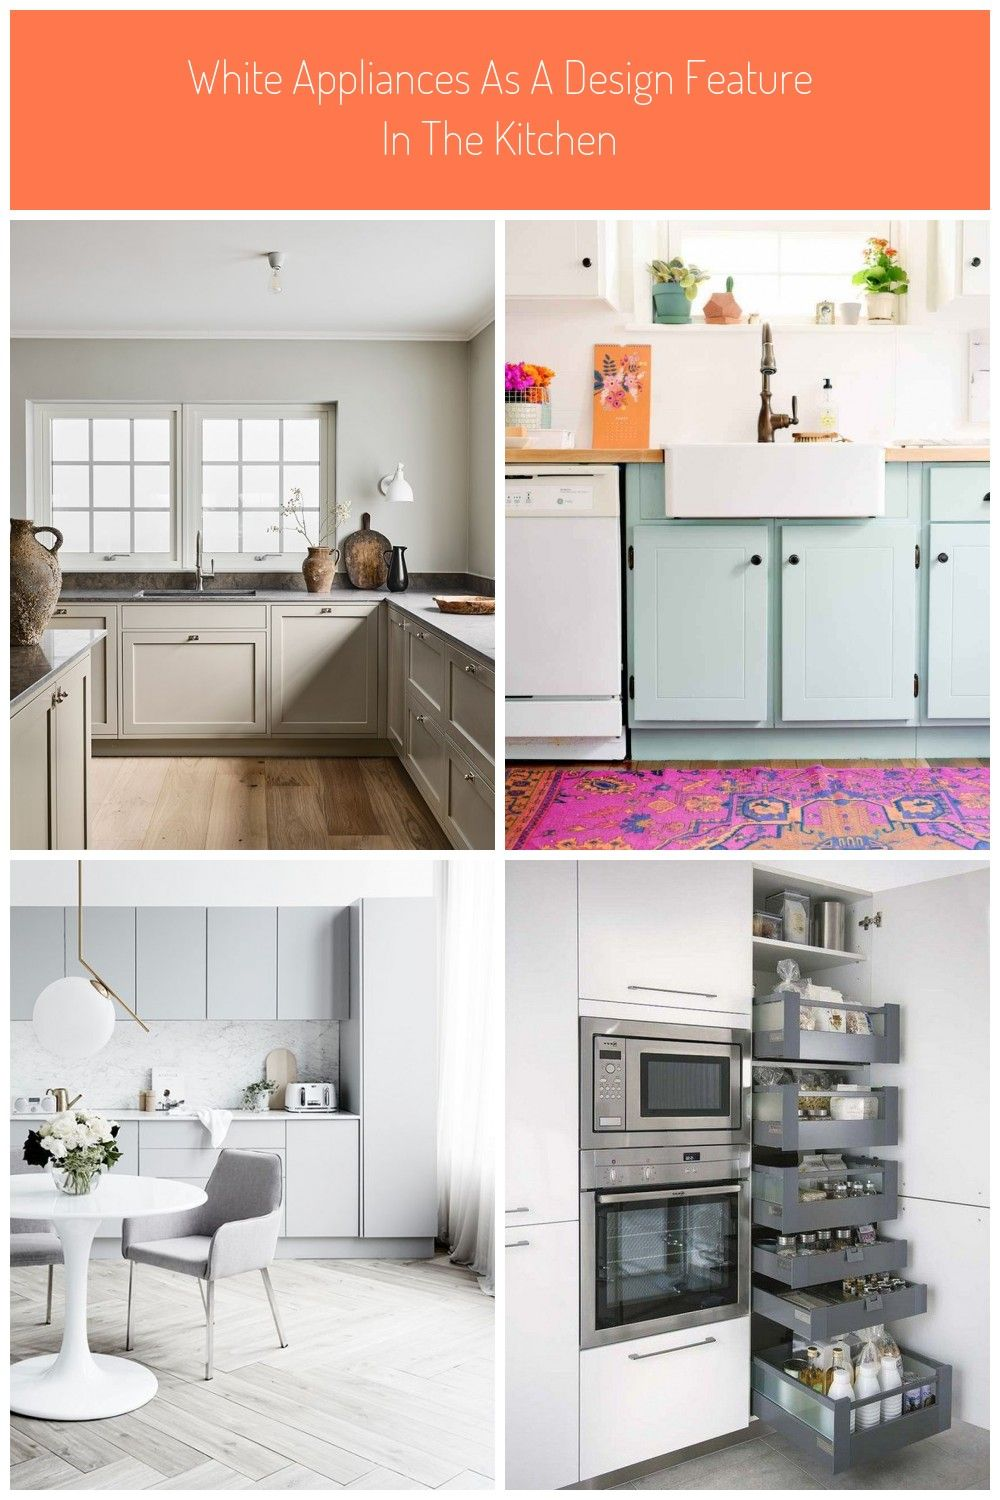 The Nordic Kitchen By Nordiska Kok Bright Kitchen The Nordic Kitchen By Nordiska Kok In 2020 Nordic Kitchen Kitchen Relaxation Room